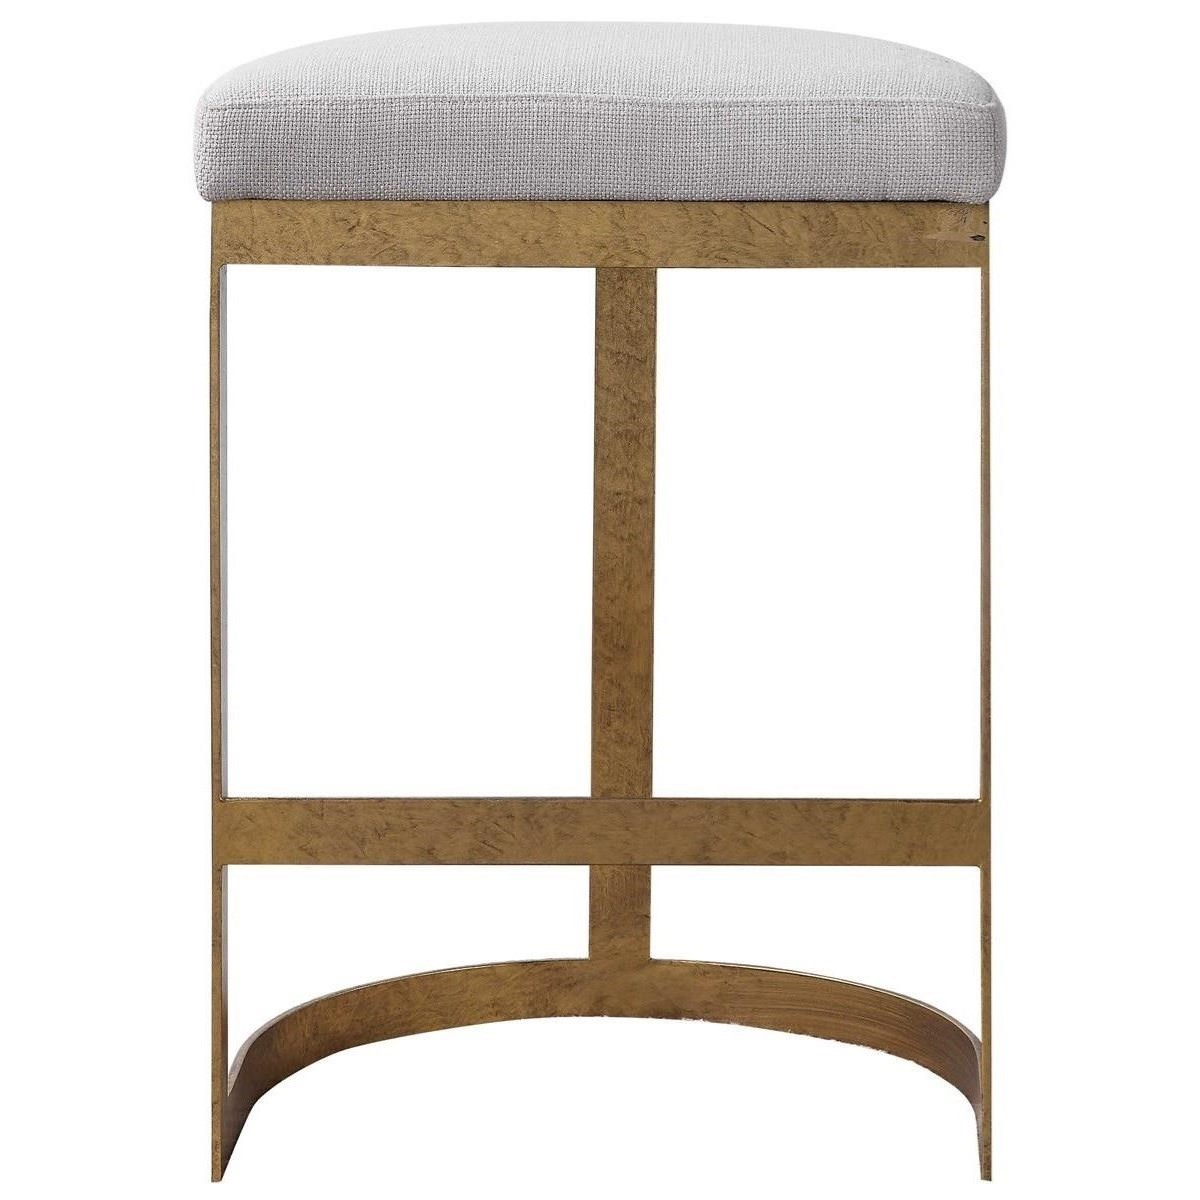 Accent Furniture - Stools Ivanna Modern Counter Stool by Uttermost at Del Sol Furniture